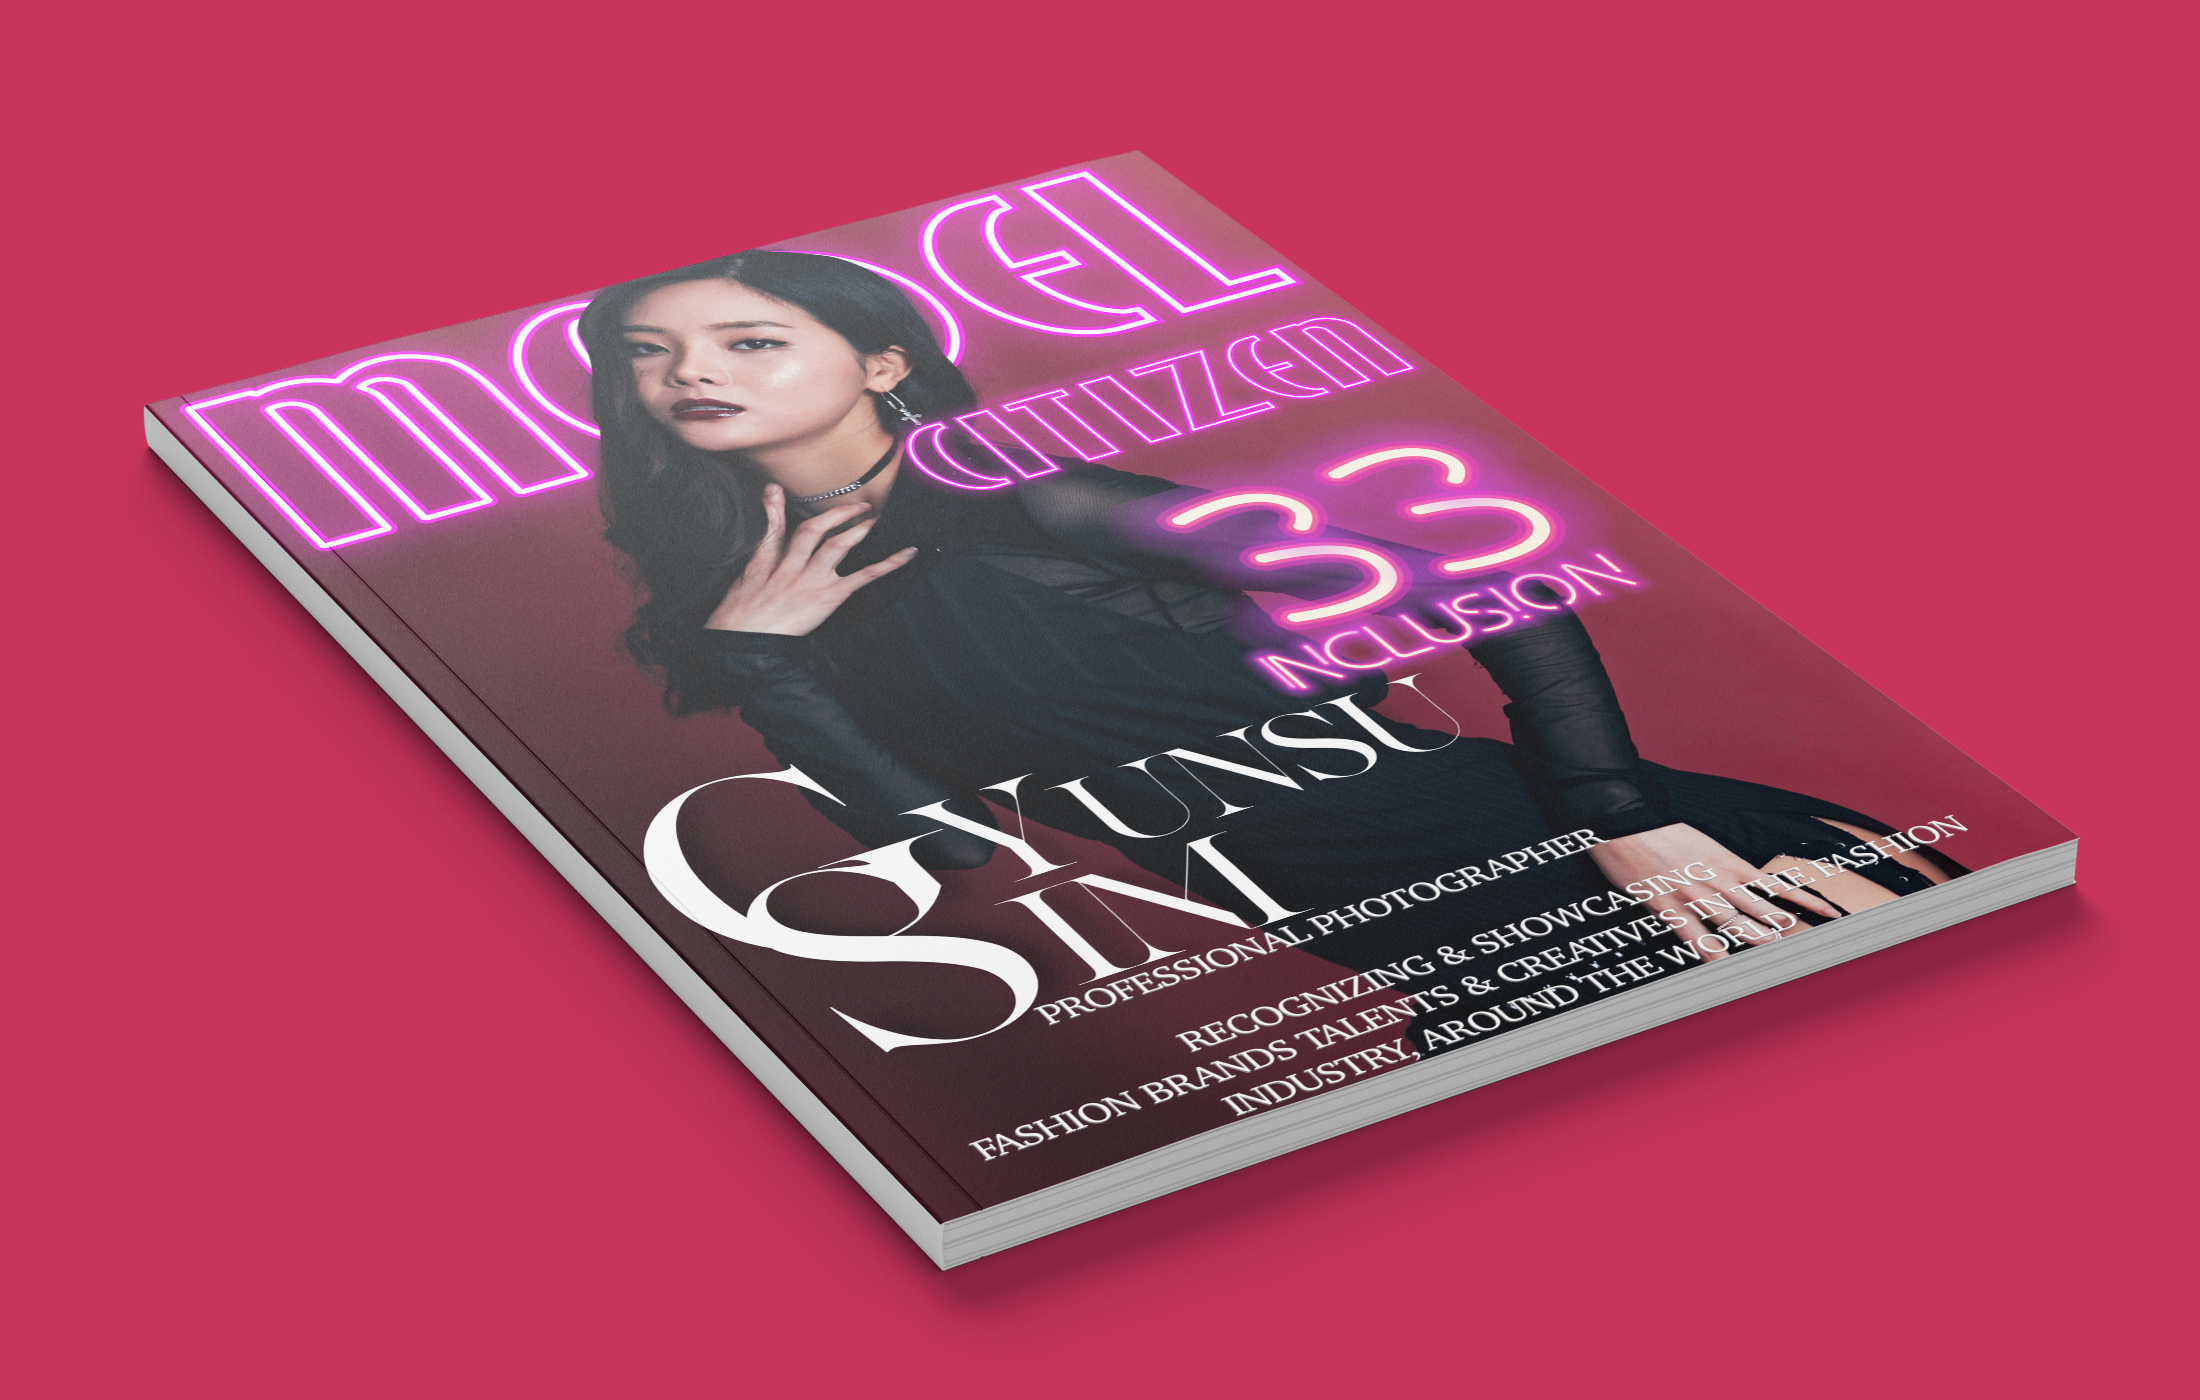 the-best-of-model-citizen-magazine-by-macky-suson-the-most-inclusive-fashion-magazine-58.png